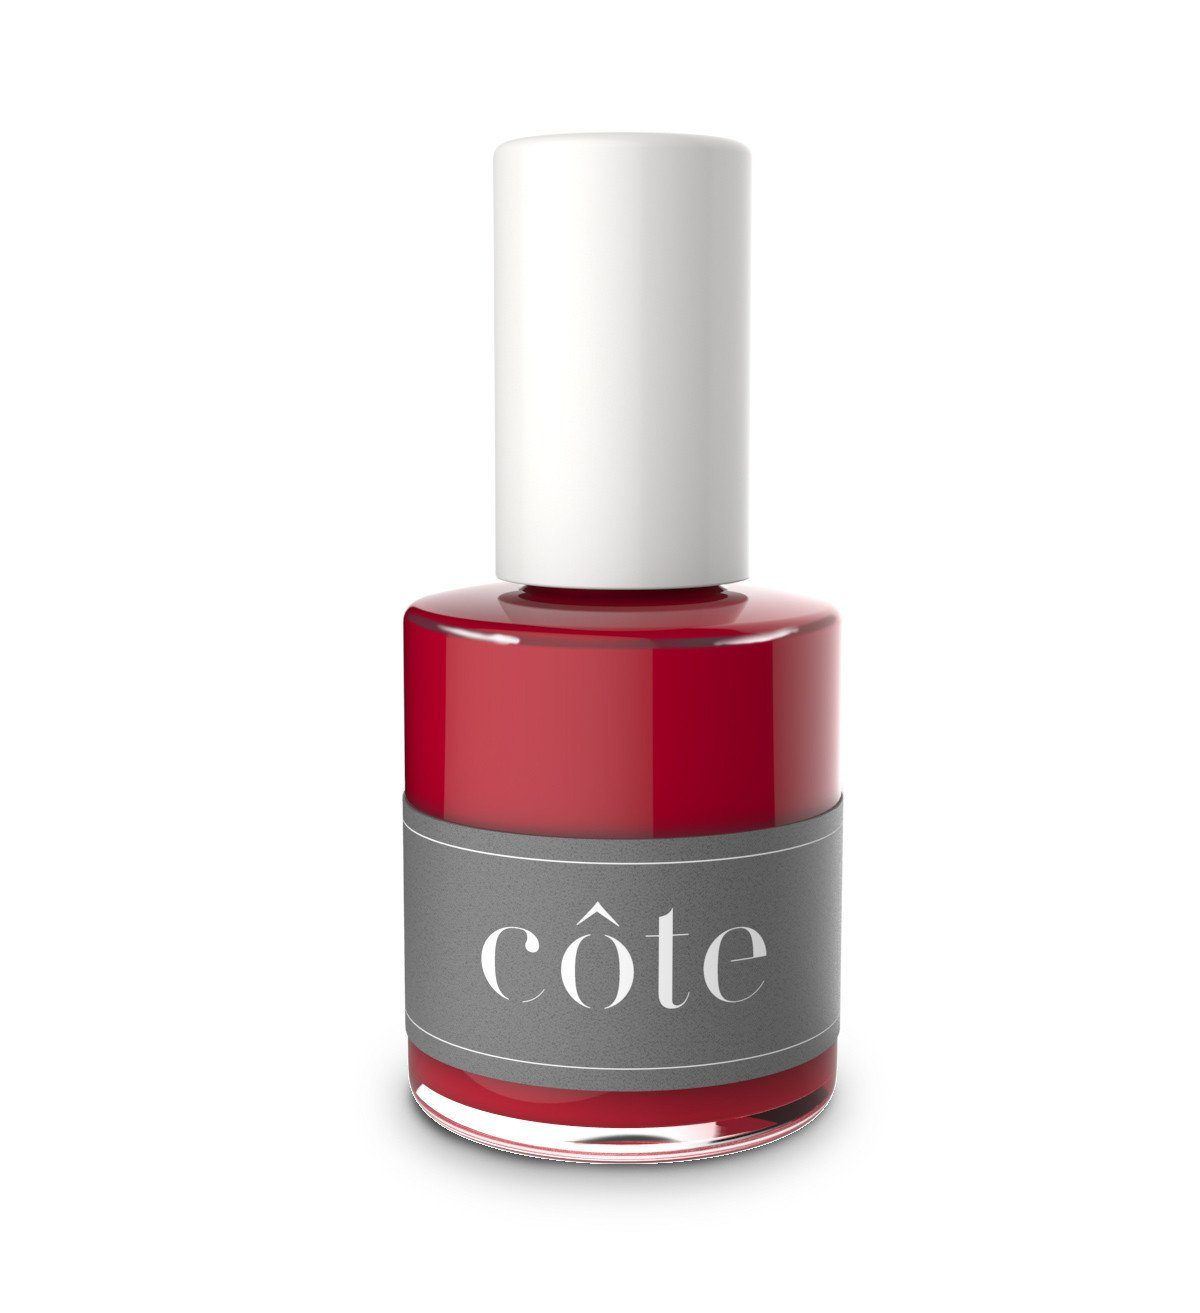 Côte No. 32 red nailpolish